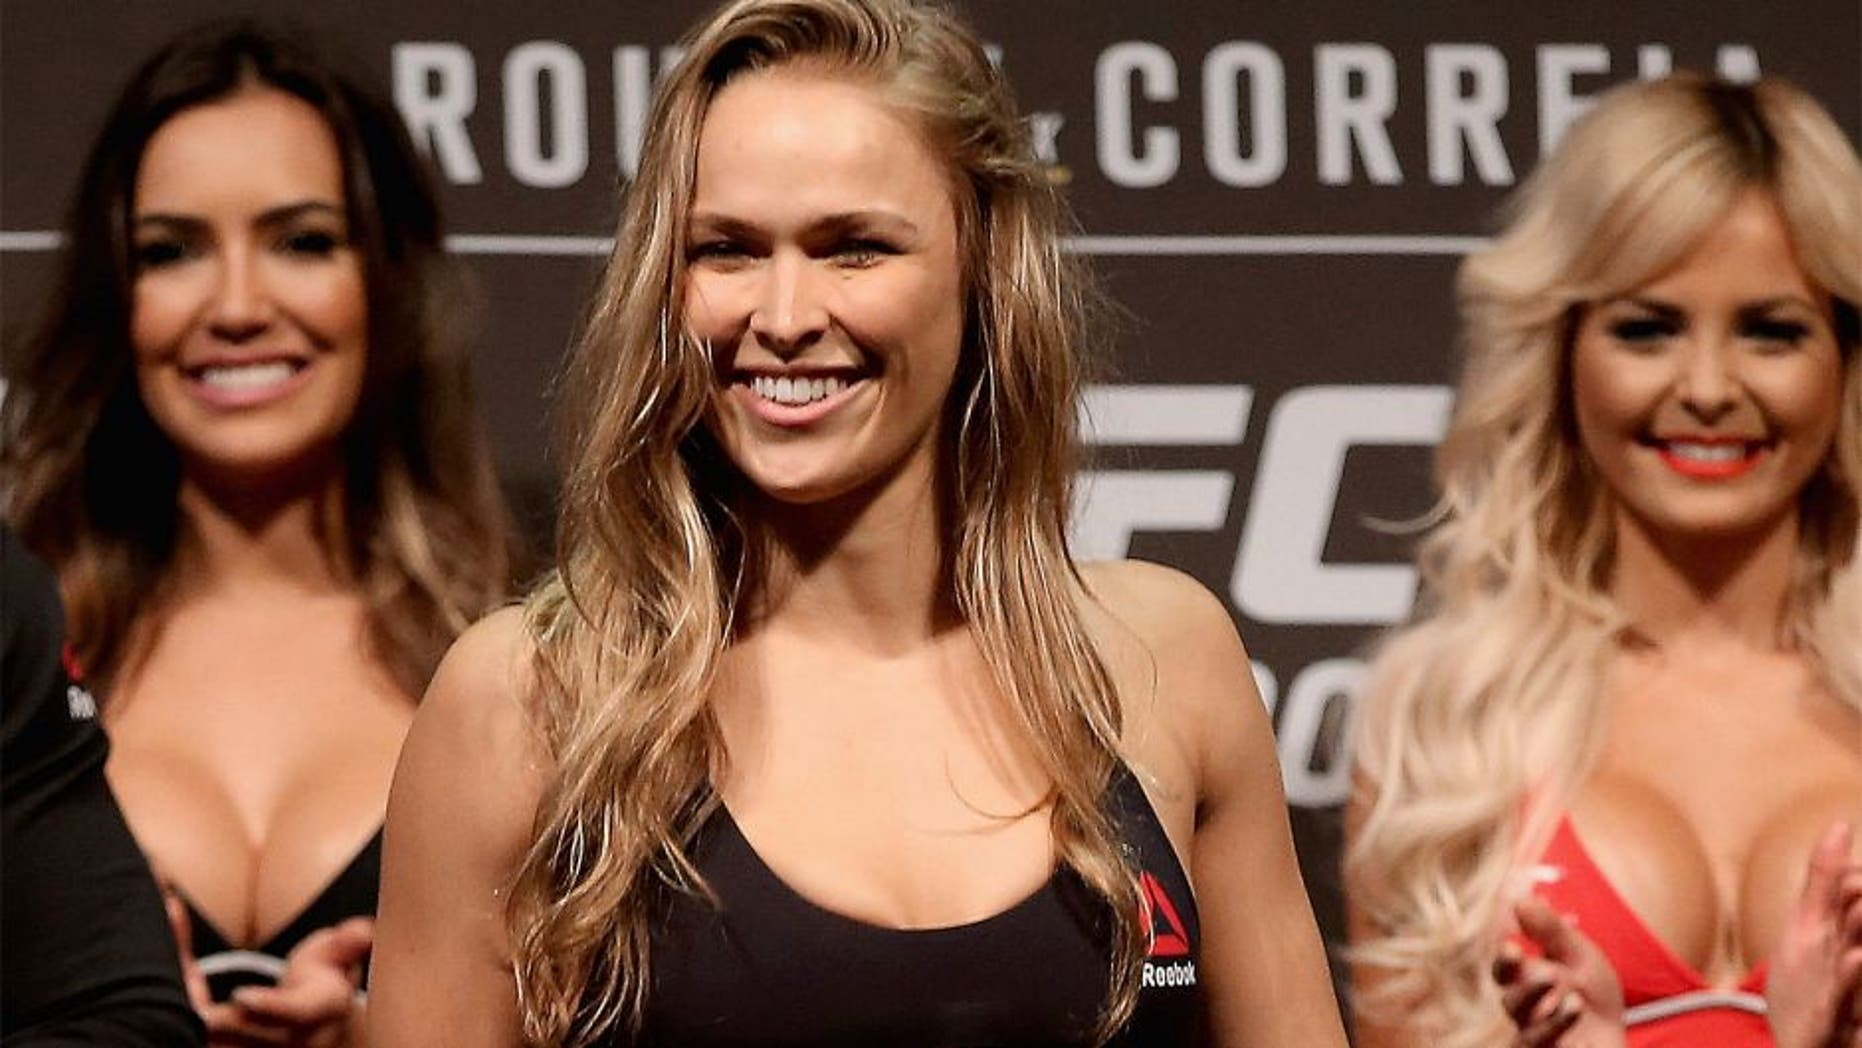 RIO DE JANEIRO, BRAZIL - JULY 31: UFC Strawweight Champion Ronda Rousey of the United States steps onto the scale during the UFC 190 Rousey v Correia weigh-in at HSBC Arena on July 31, 2015 in Rio de Janeiro, Brazil. (Photo by Matthew Stockman/Getty Images)